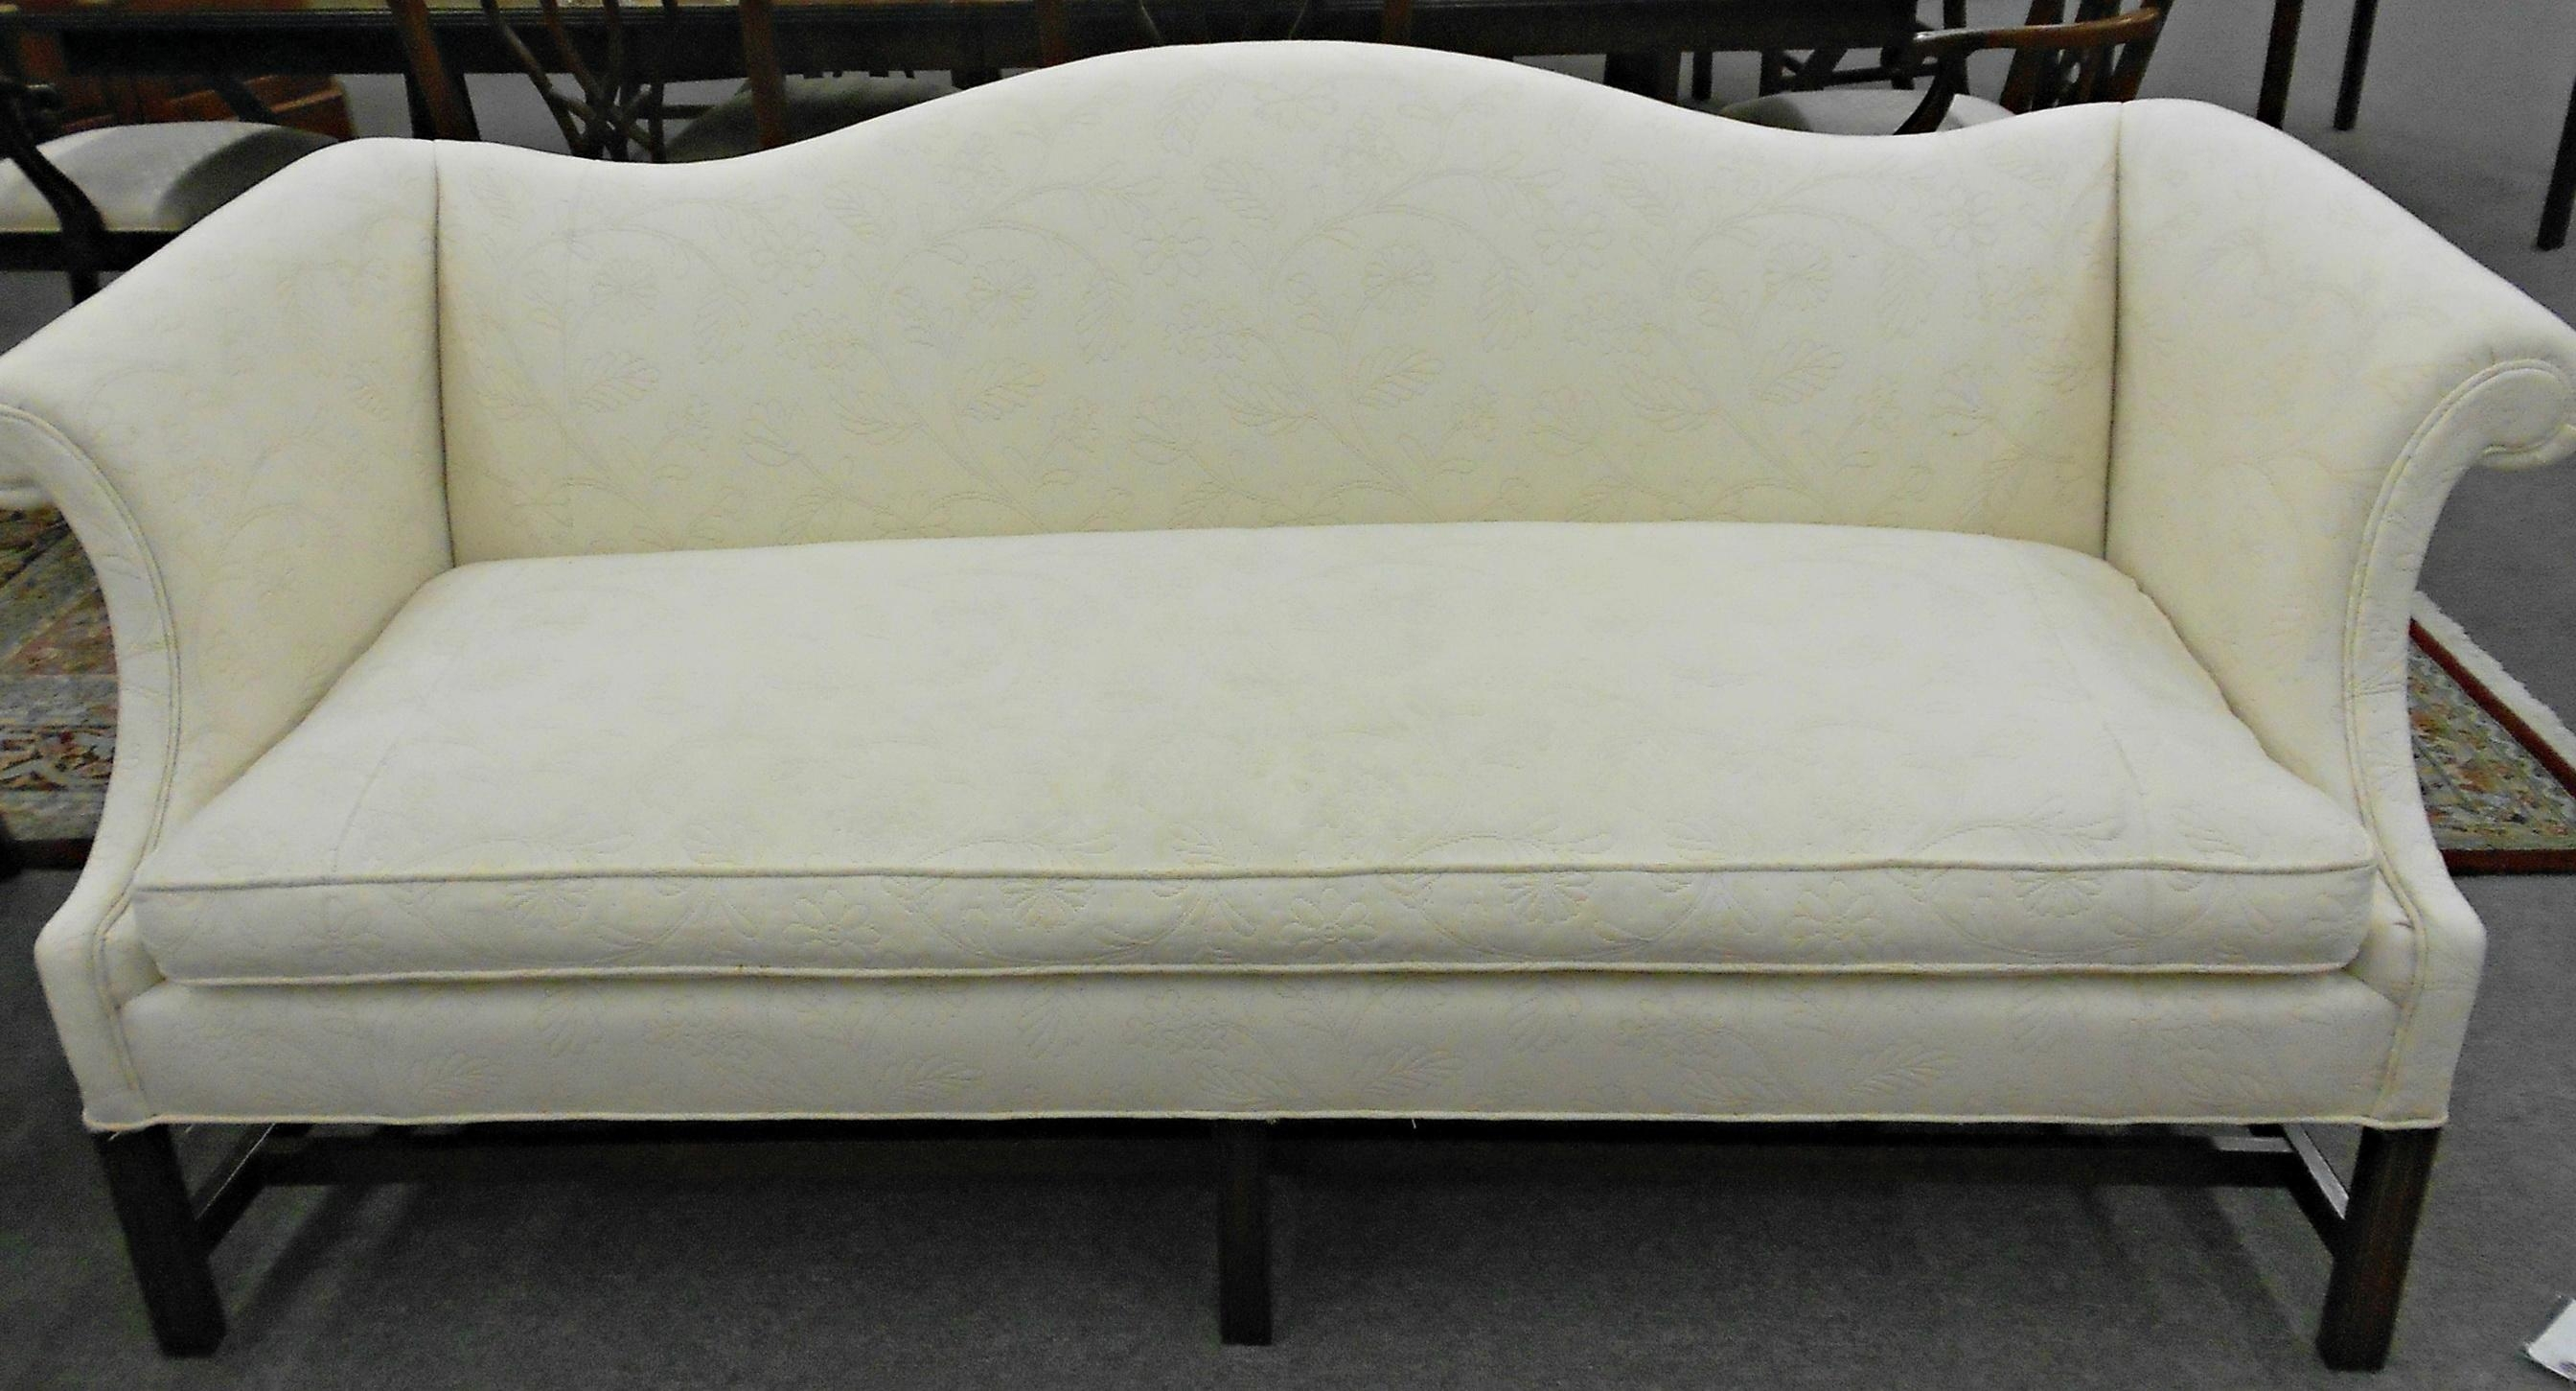 Sofas Center : Unbelievable Slipcover For Camelback Sofa Image With Camel Back Couch Slipcovers (Image 20 of 20)